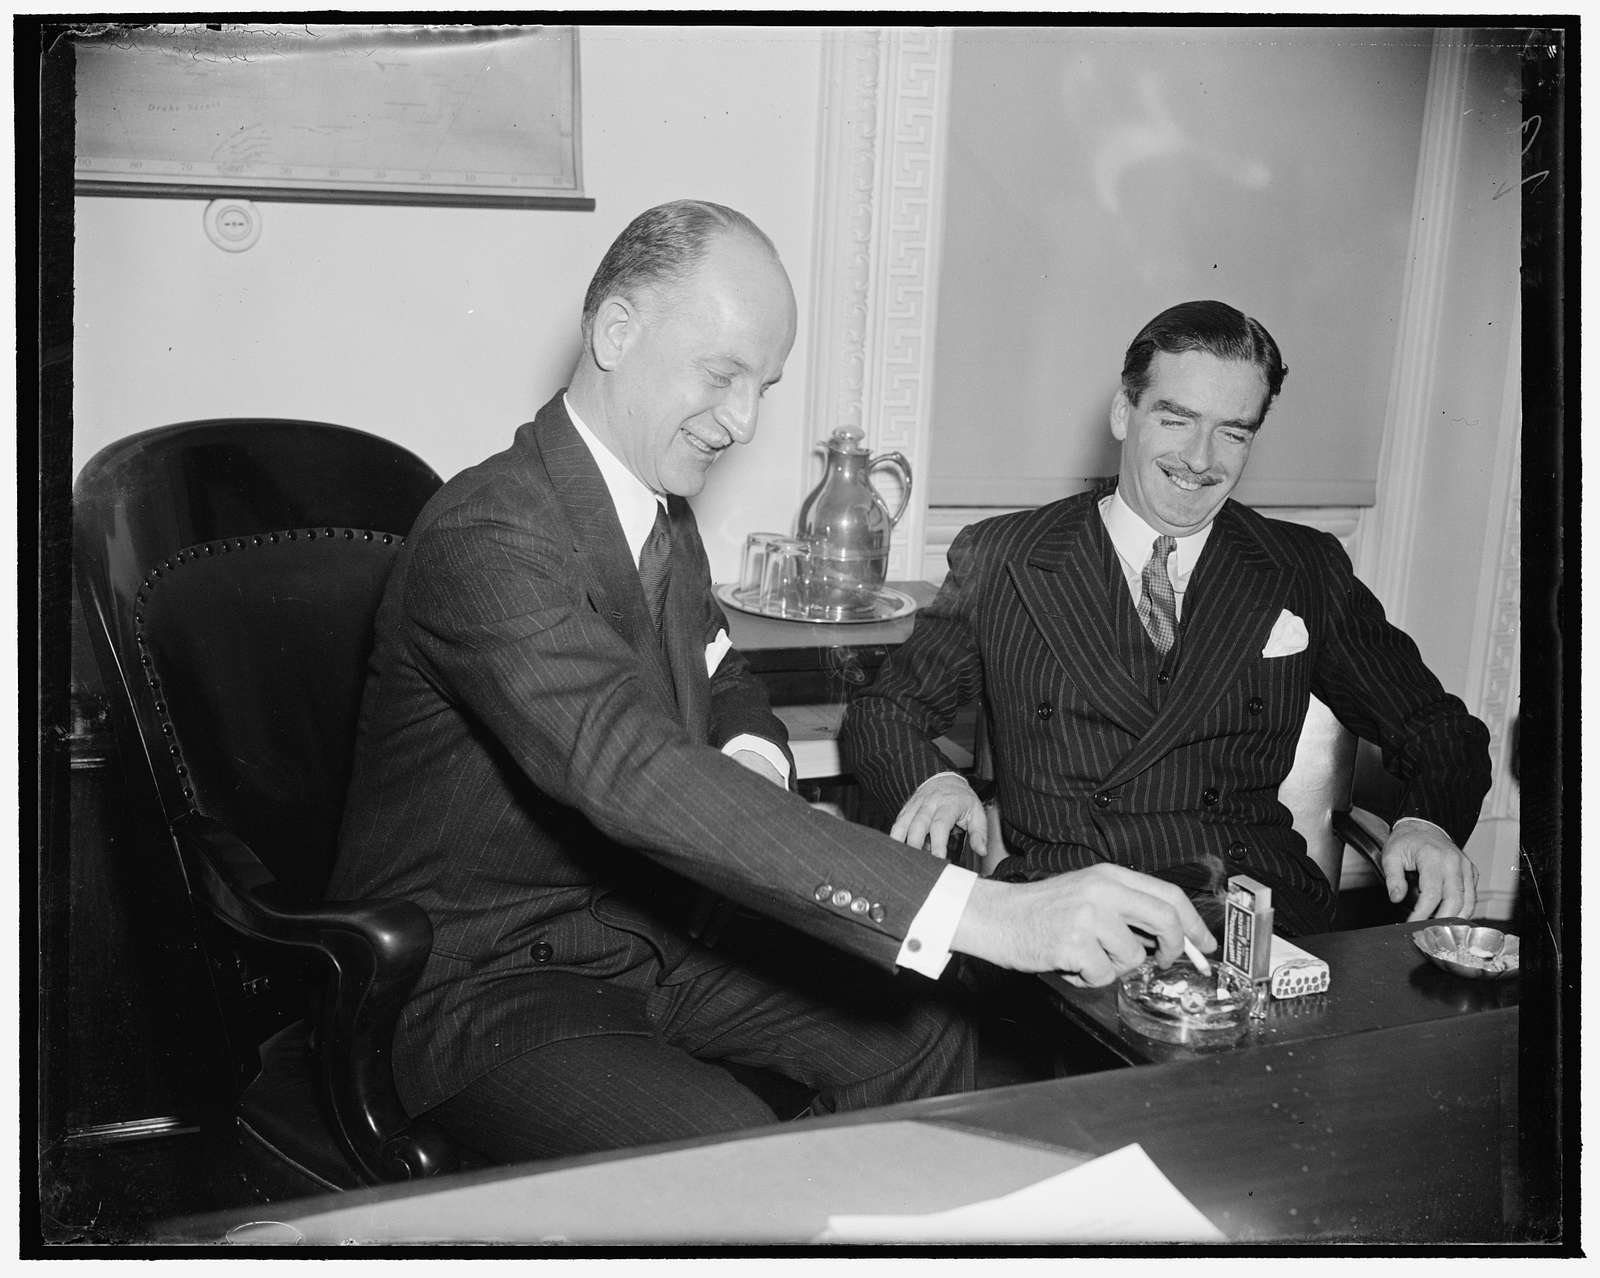 Eden calls on acting Secretary of State. Washington, D.C., Dec. 13. Anthony Eden, former British Foreign Secretary, was in rare humor as he called on acting Secretary of State Sumner Welles today at the State Department. Later Secretary Welles accompanied Eden to the White House where he paid his respects to President Roosevelt, 121338